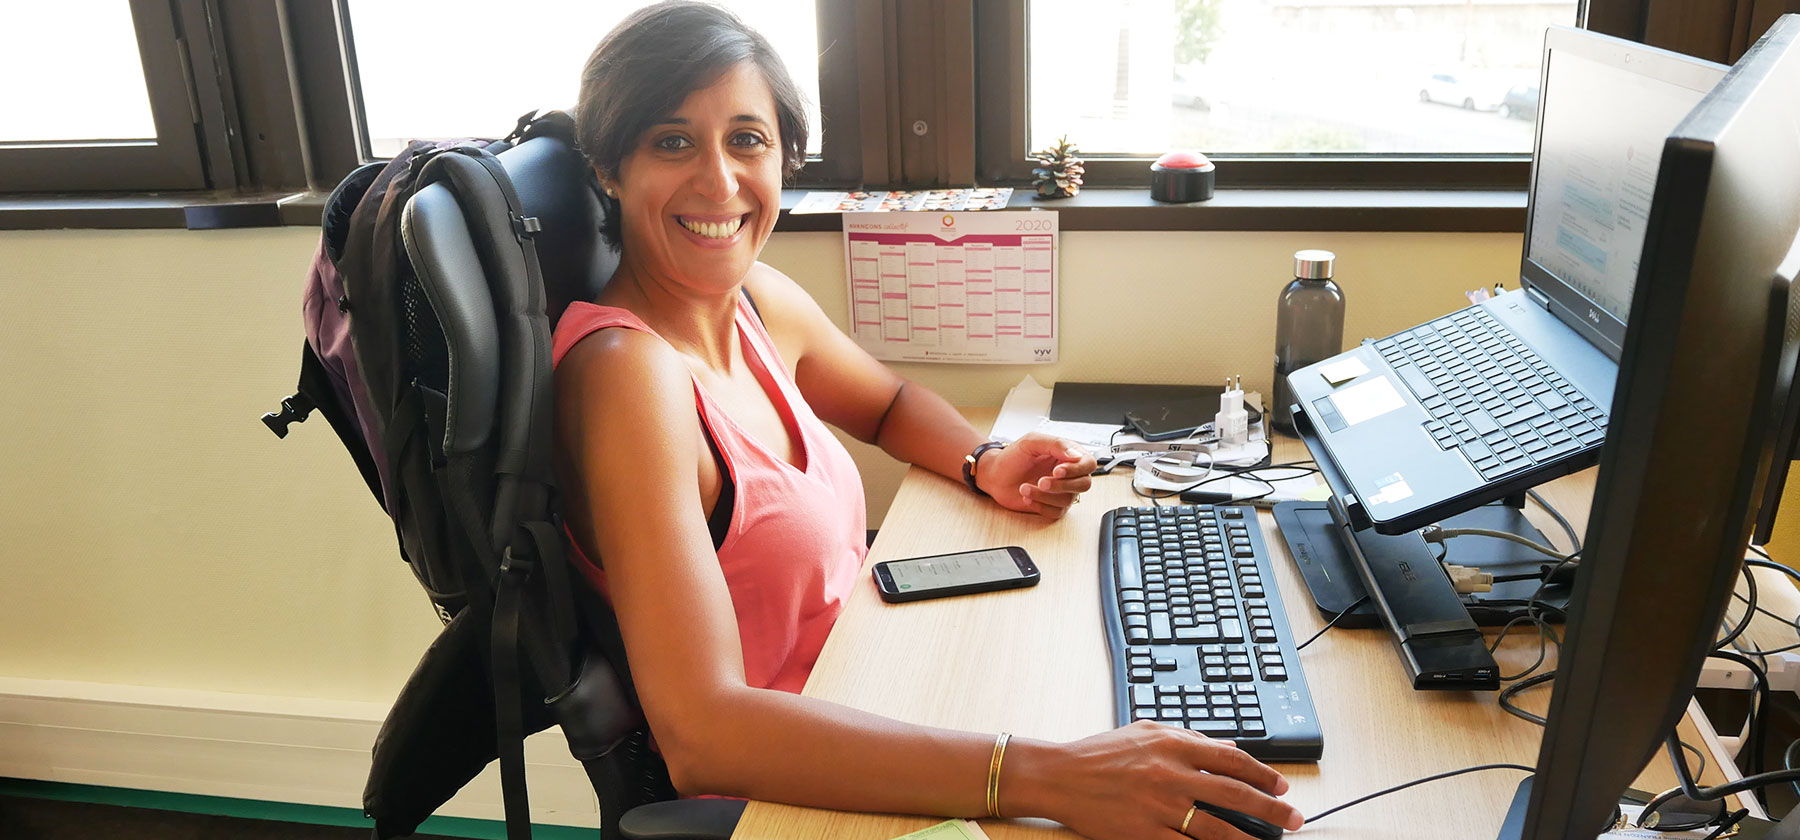 Linda Belabed, responsable supply chain